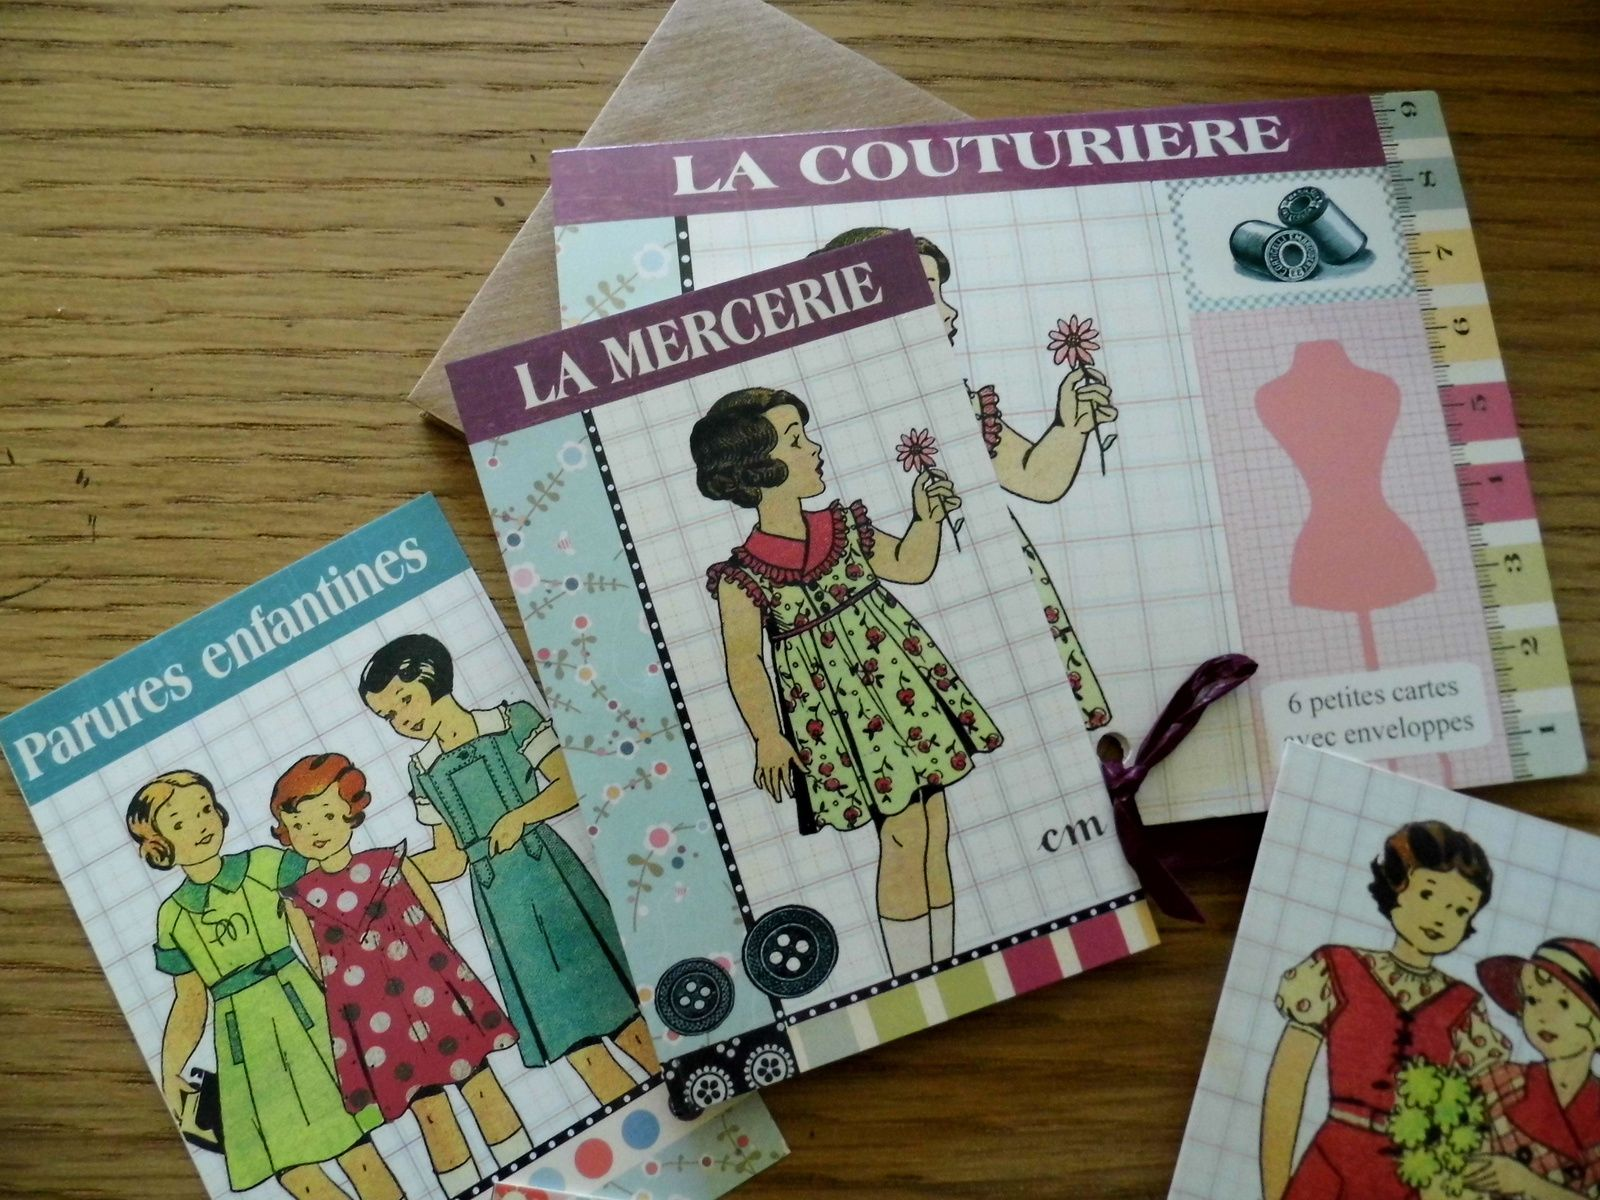 Mercerie couture made in francoise broderies for Mercerie couture